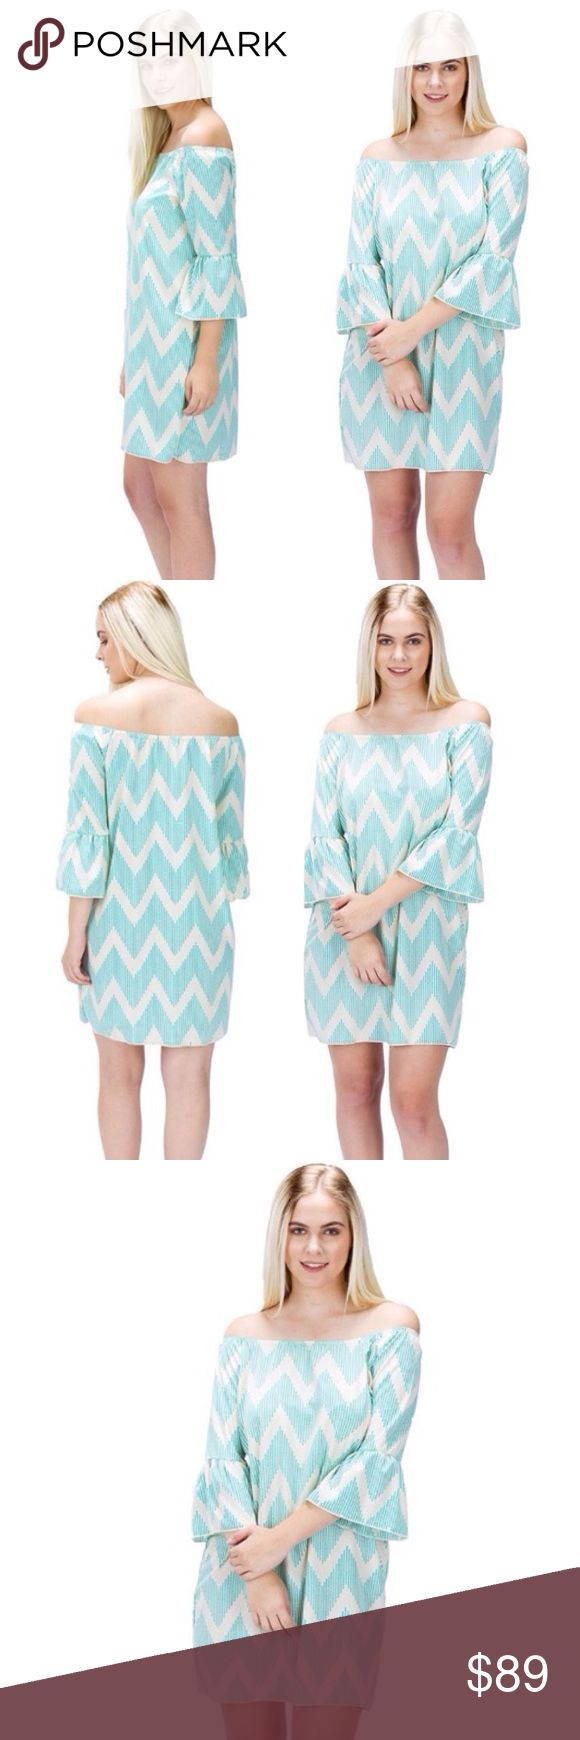 💖SERAPHINA Patterned Off Shoulder Dress ‼️SERAPHINA Blue and White Patterned Off Shoulder Dress🔆🔆🔆Super cute and pretty! This dress is great for spring, summer, and all season. We bought this on our trip to Europe. parties beach road trips shopping night out vacation traveling cruises after work attire girly.  prep preppy trendy in style stylish sophisticated classy chic fun pretty beautiful shirt popular fashion womens club party wedding bridal showers baby showers birthdays dinners…